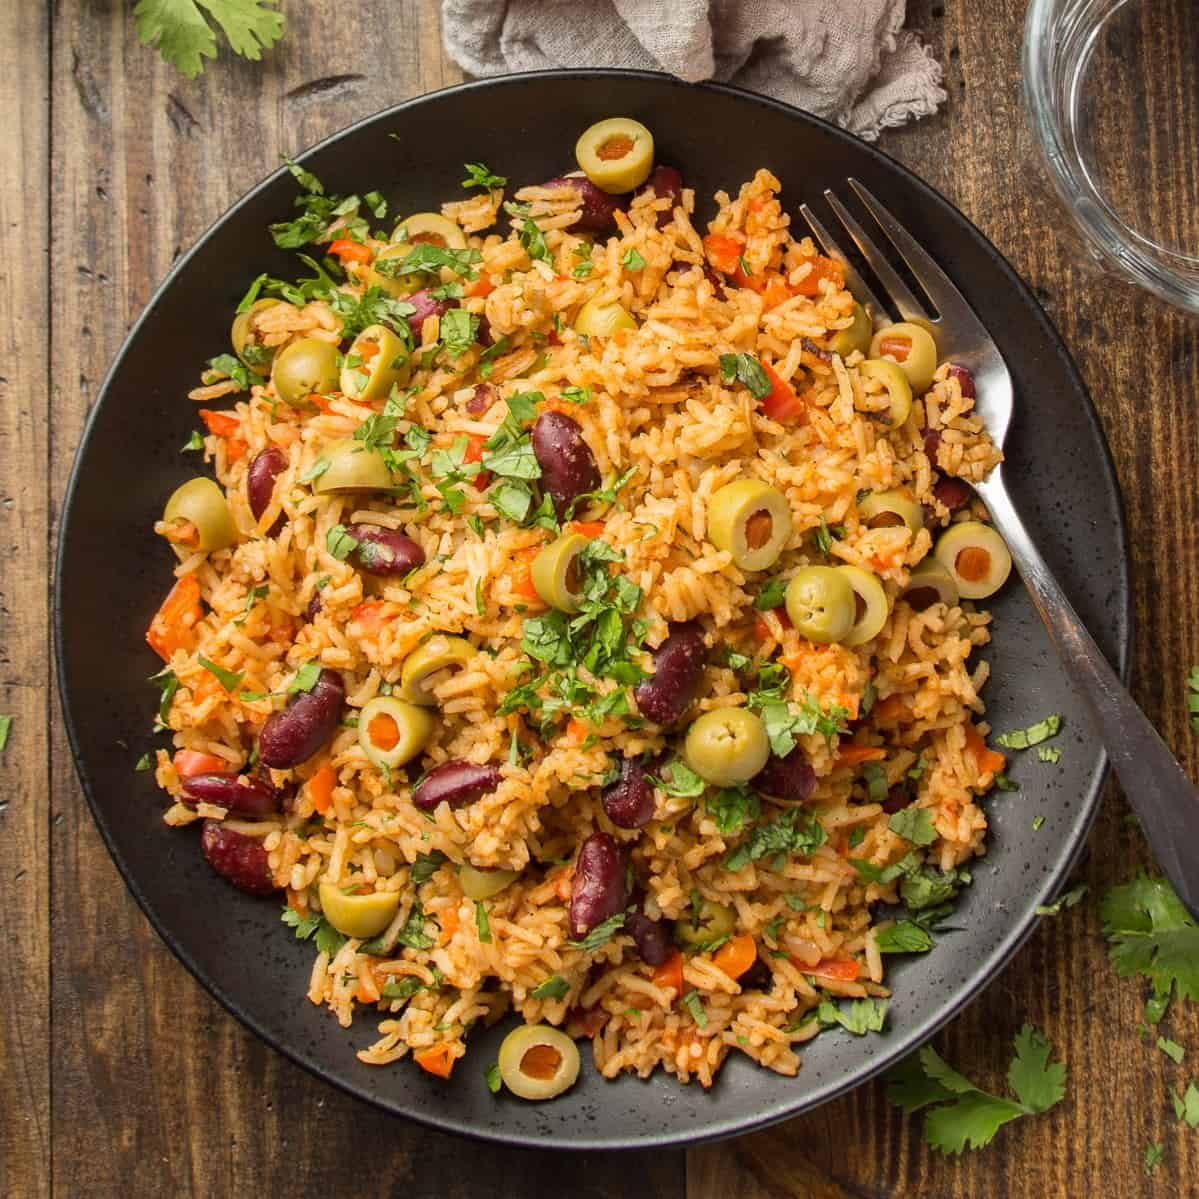 Plate of Spanish Rice with Fork